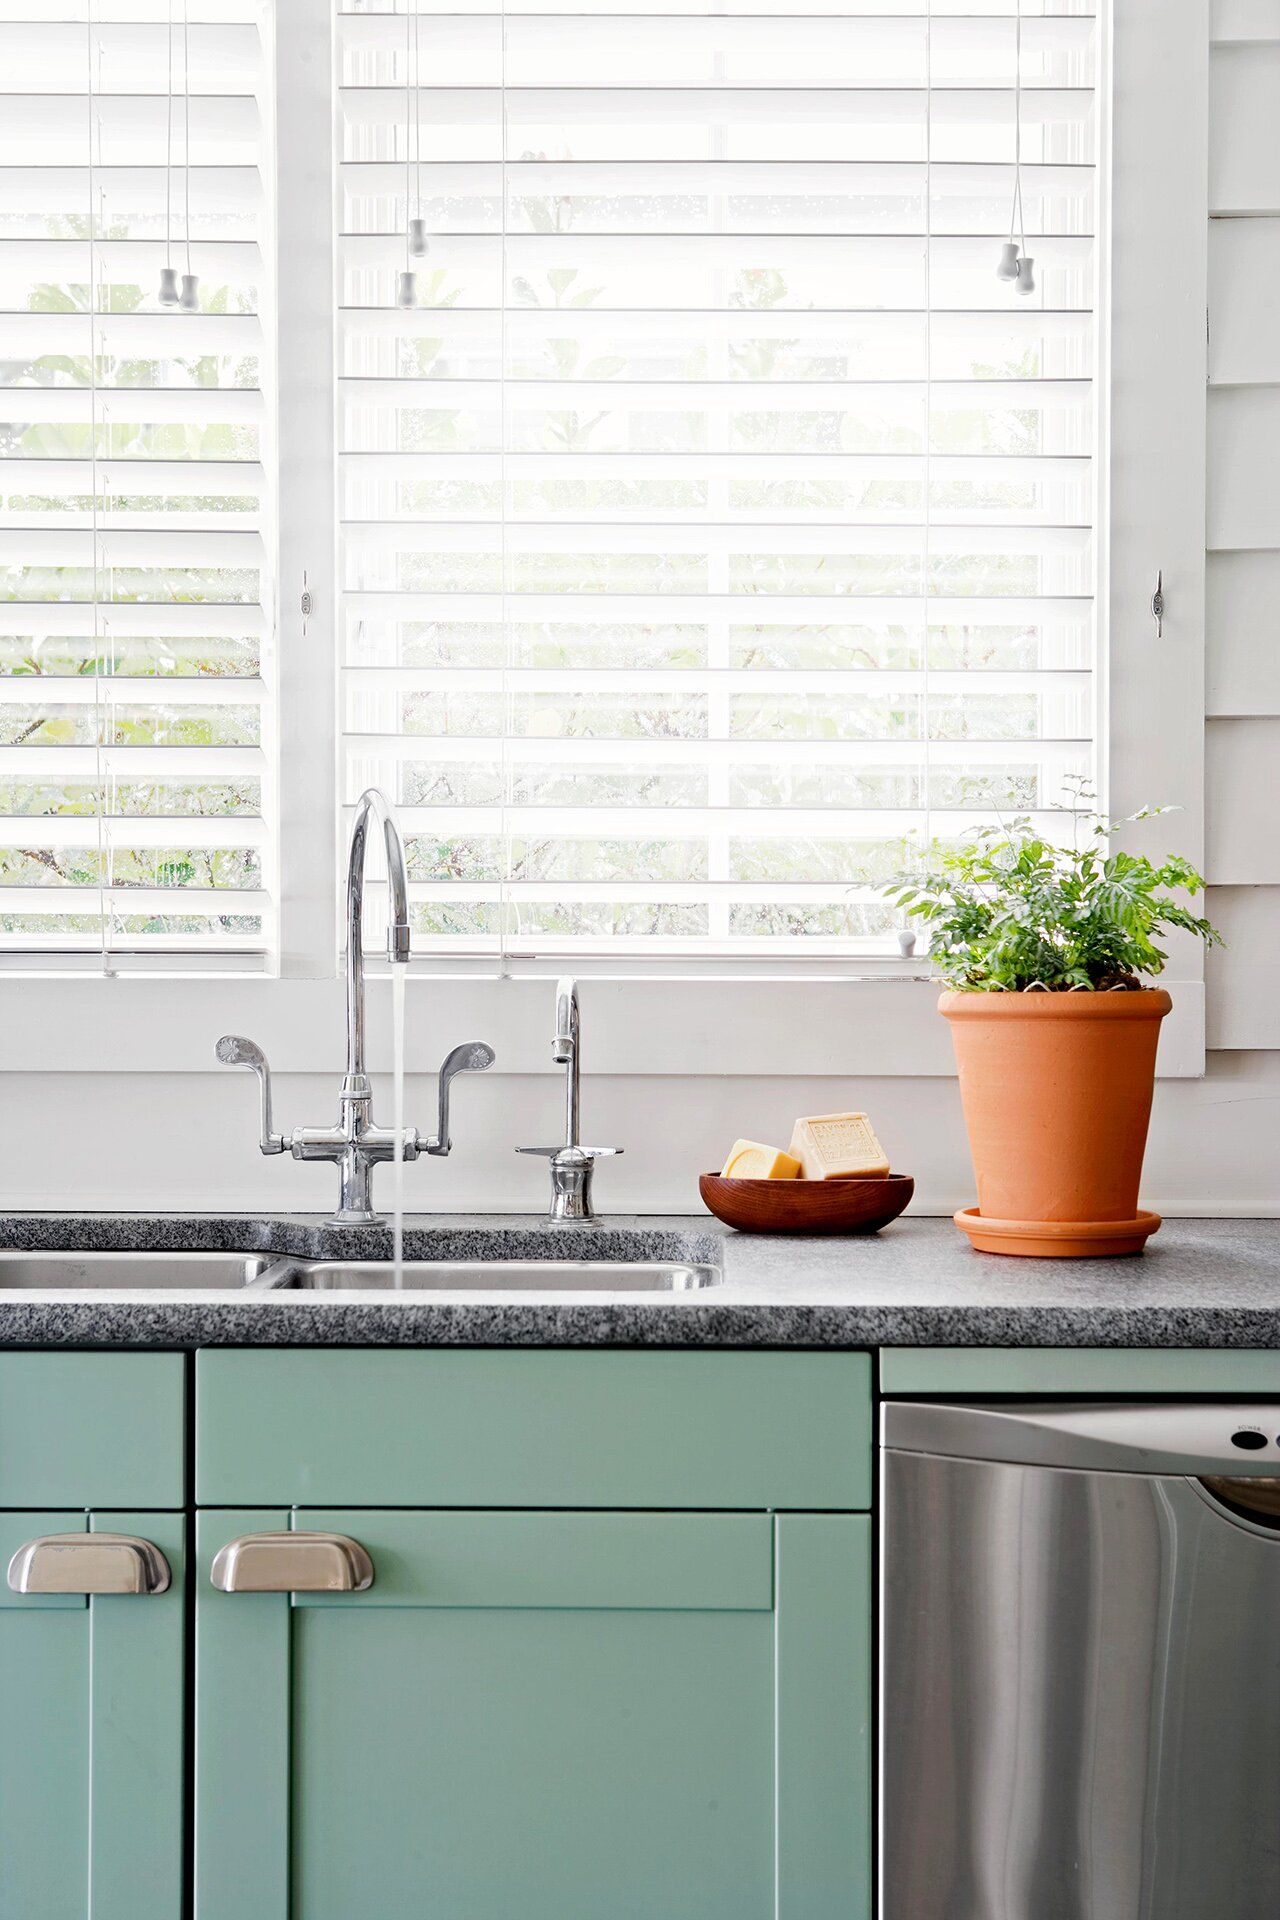 Custom Touches for Small Kitchens in 2020 Small kitchen